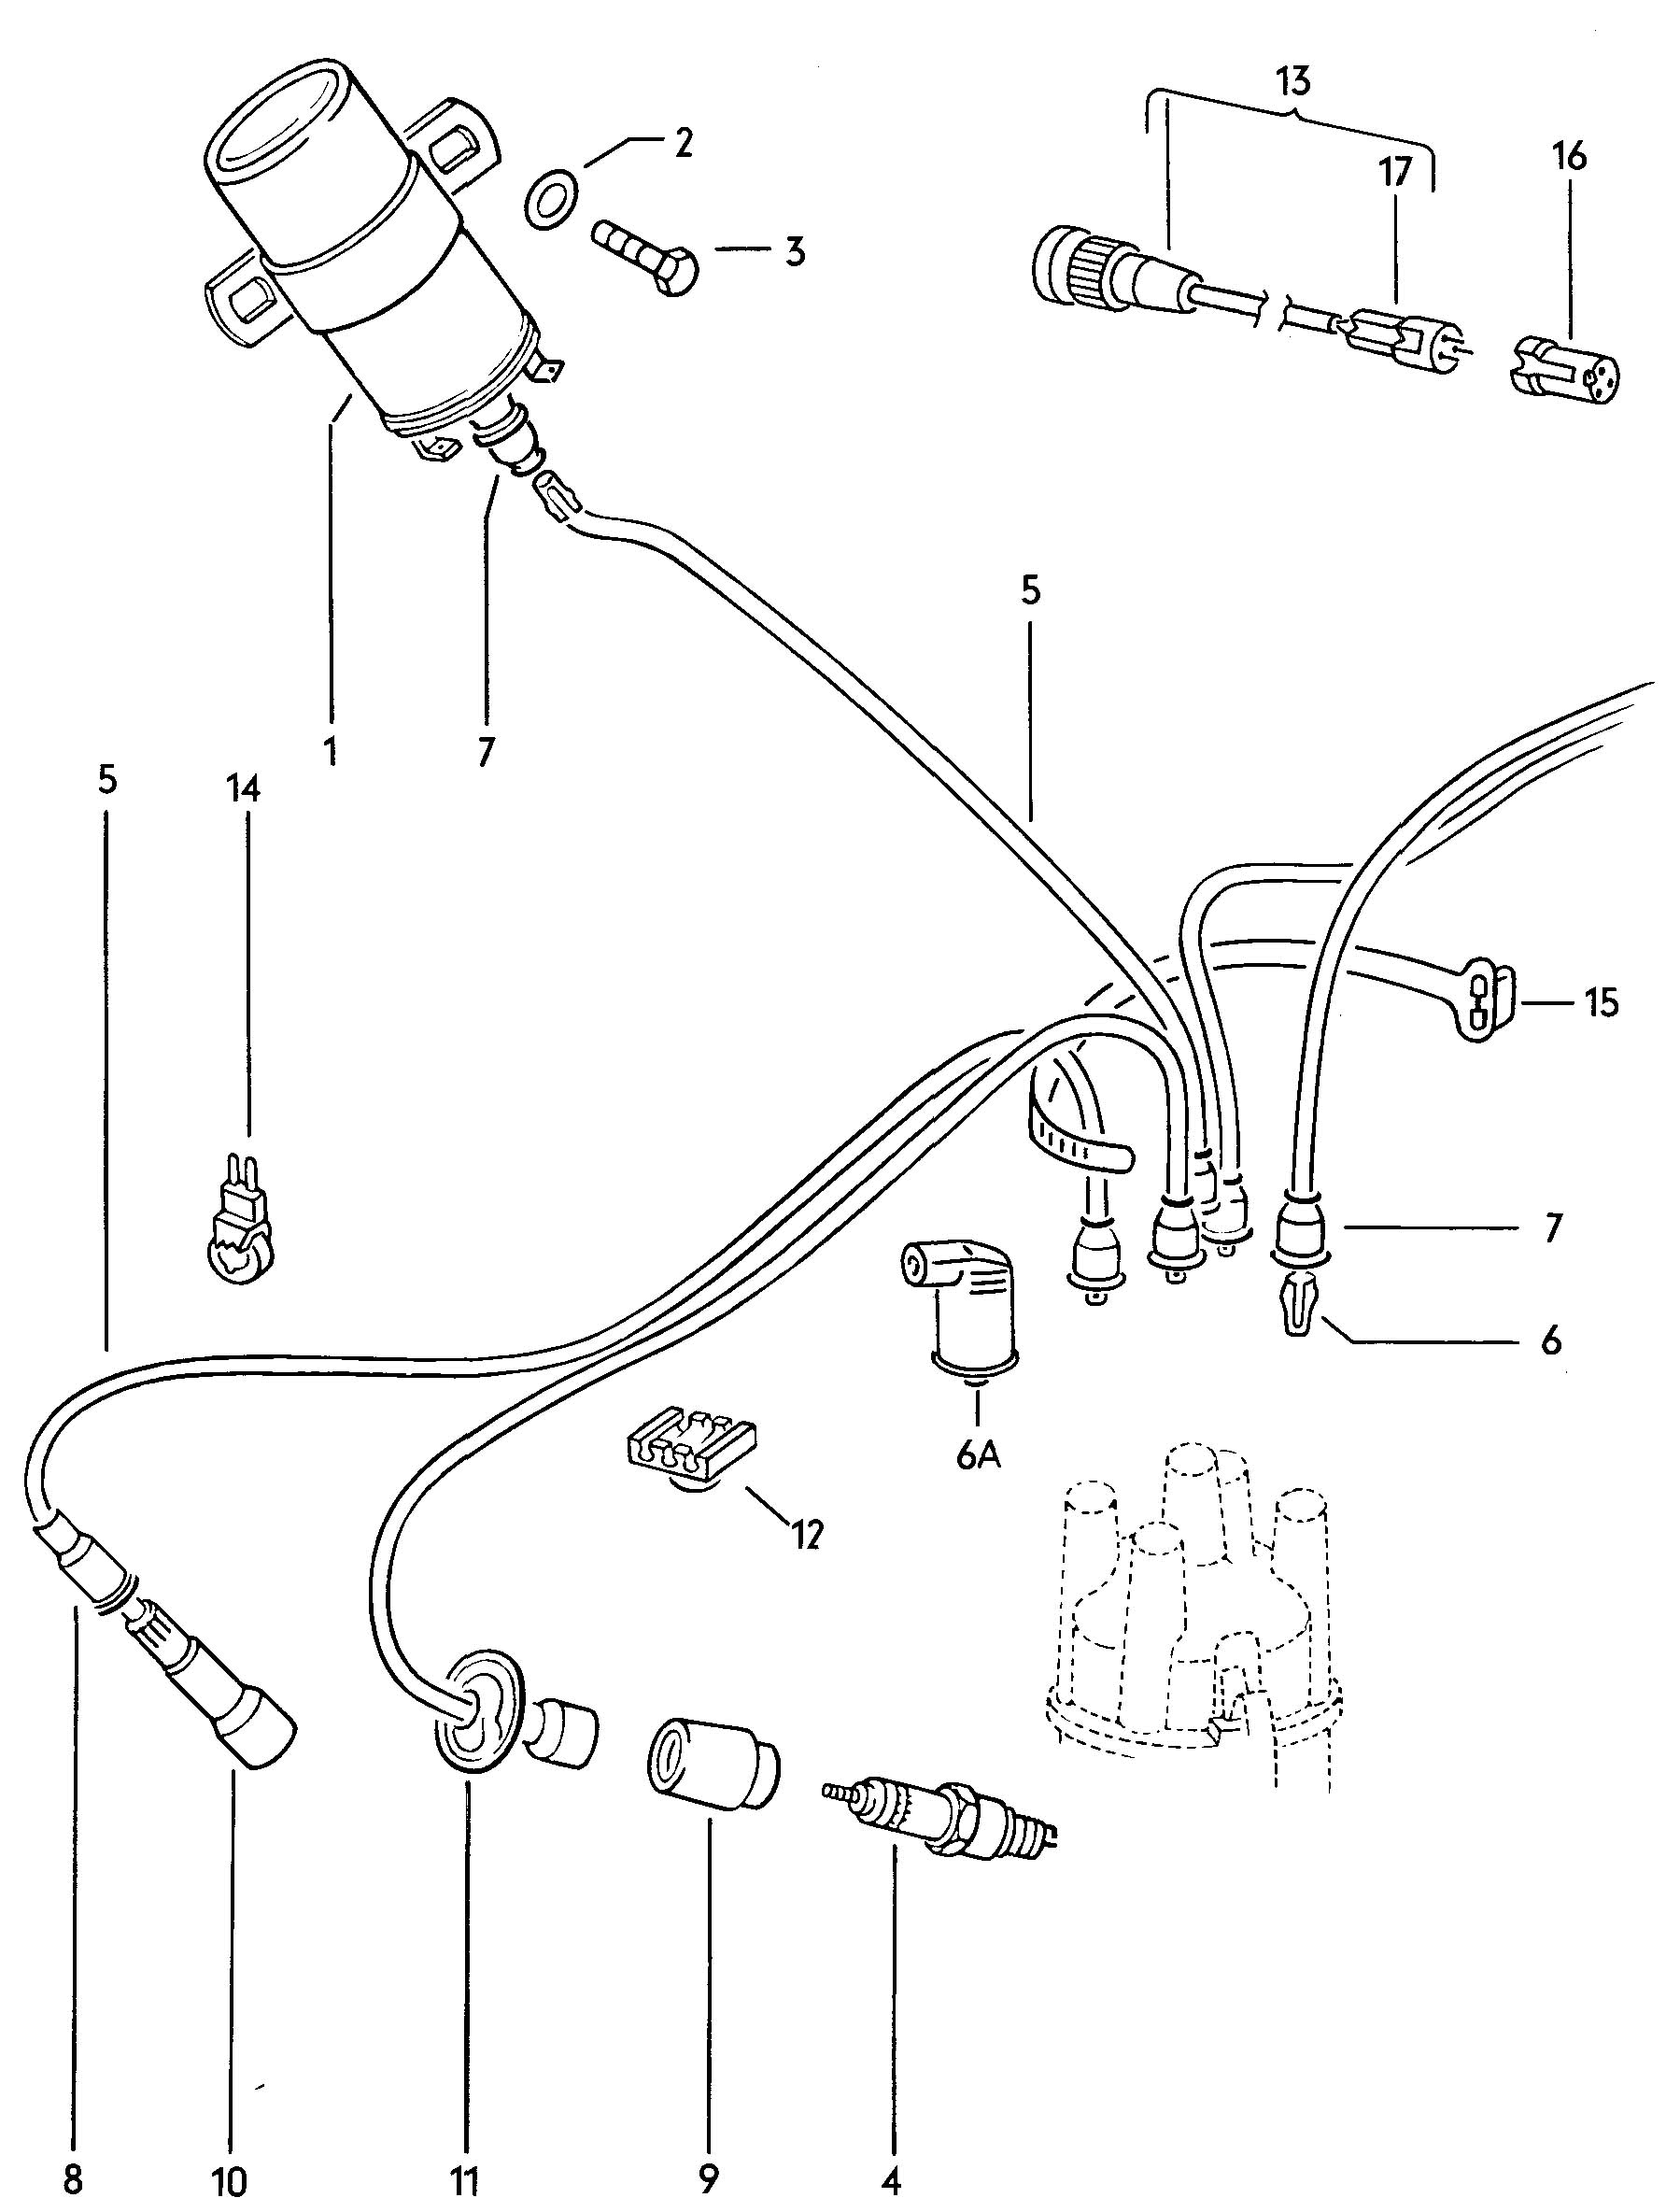 volkswagen beetle ignition coil ignition wire spark plug vw ignition coil wiring diagram #13